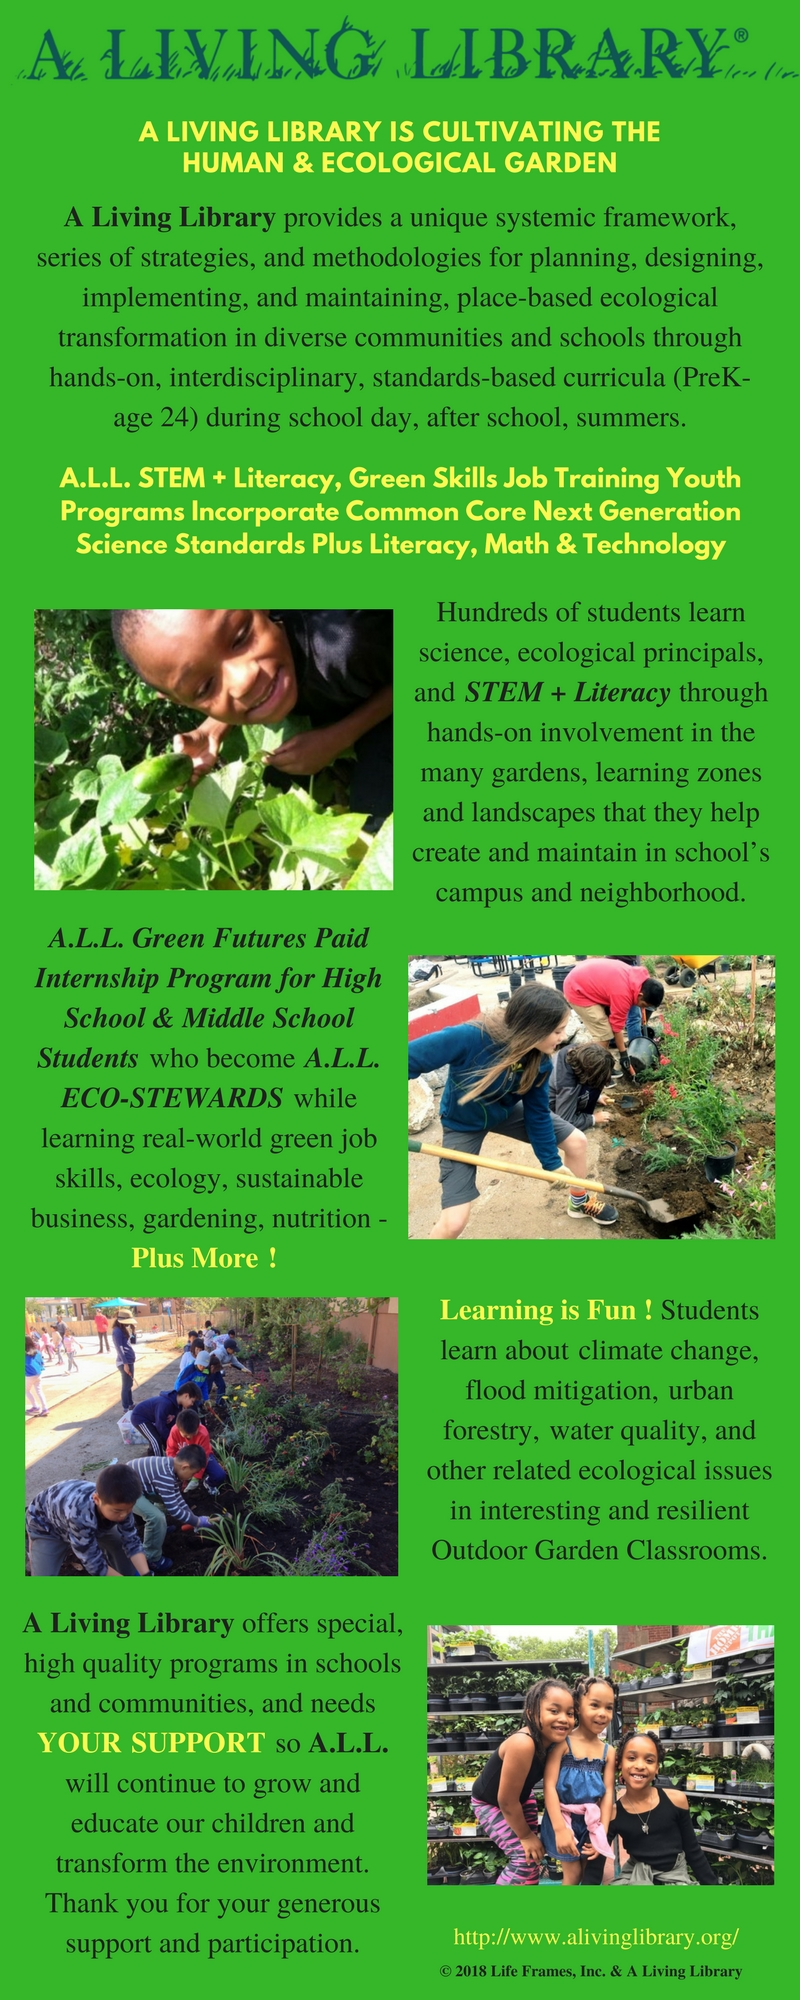 A.L.L. STEM + Literacy, Green Skills Job Training Youth Programs Incorporate Common Core Next Generation Science Standards Plus Literacy & Math